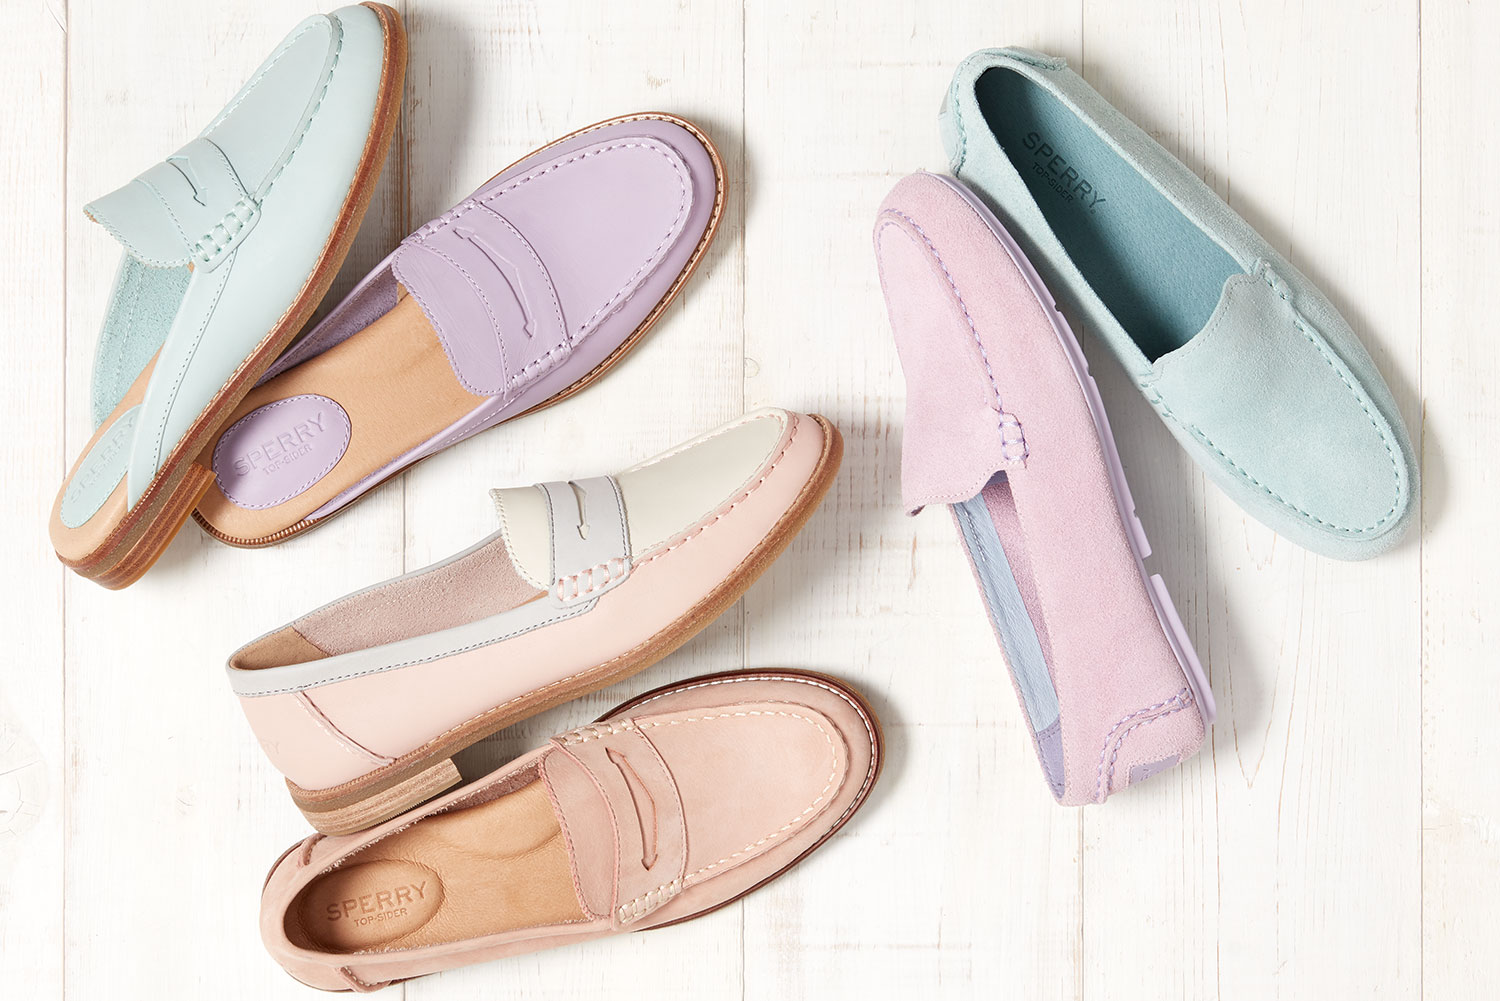 Pastel shoes arranged in a fan-like pattern